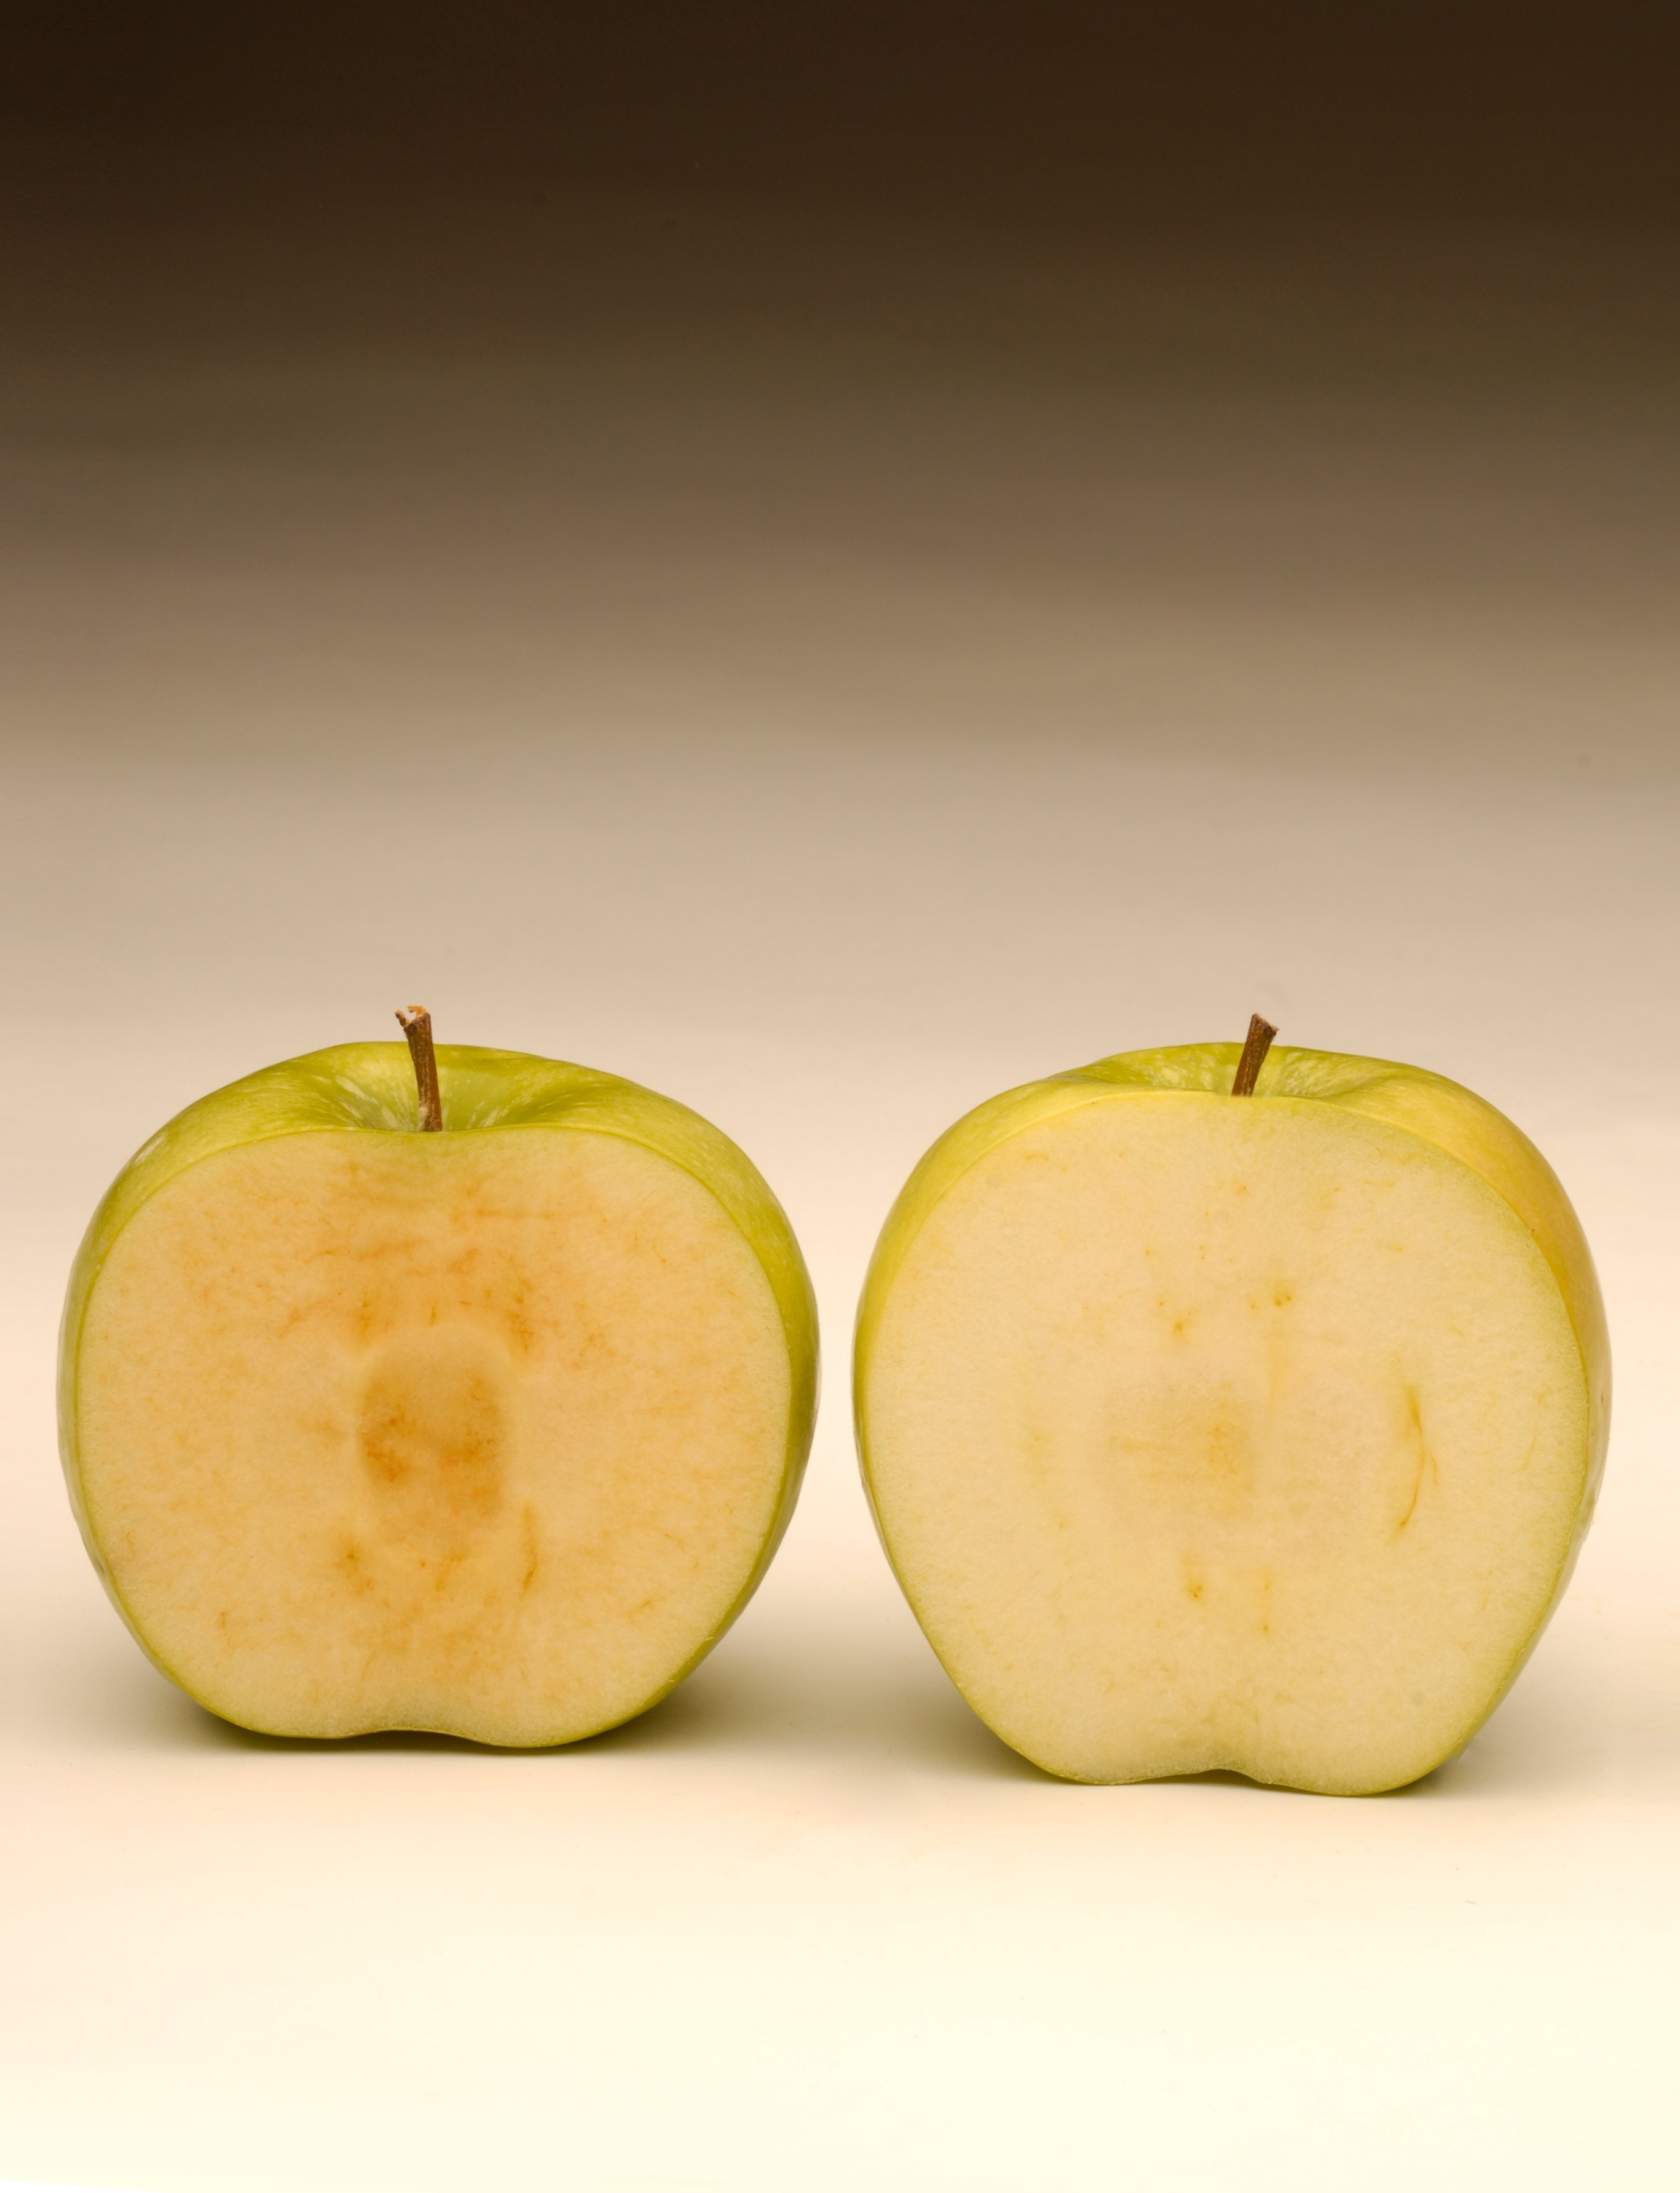 Two sliced apples, one showing signs of browing and the other not